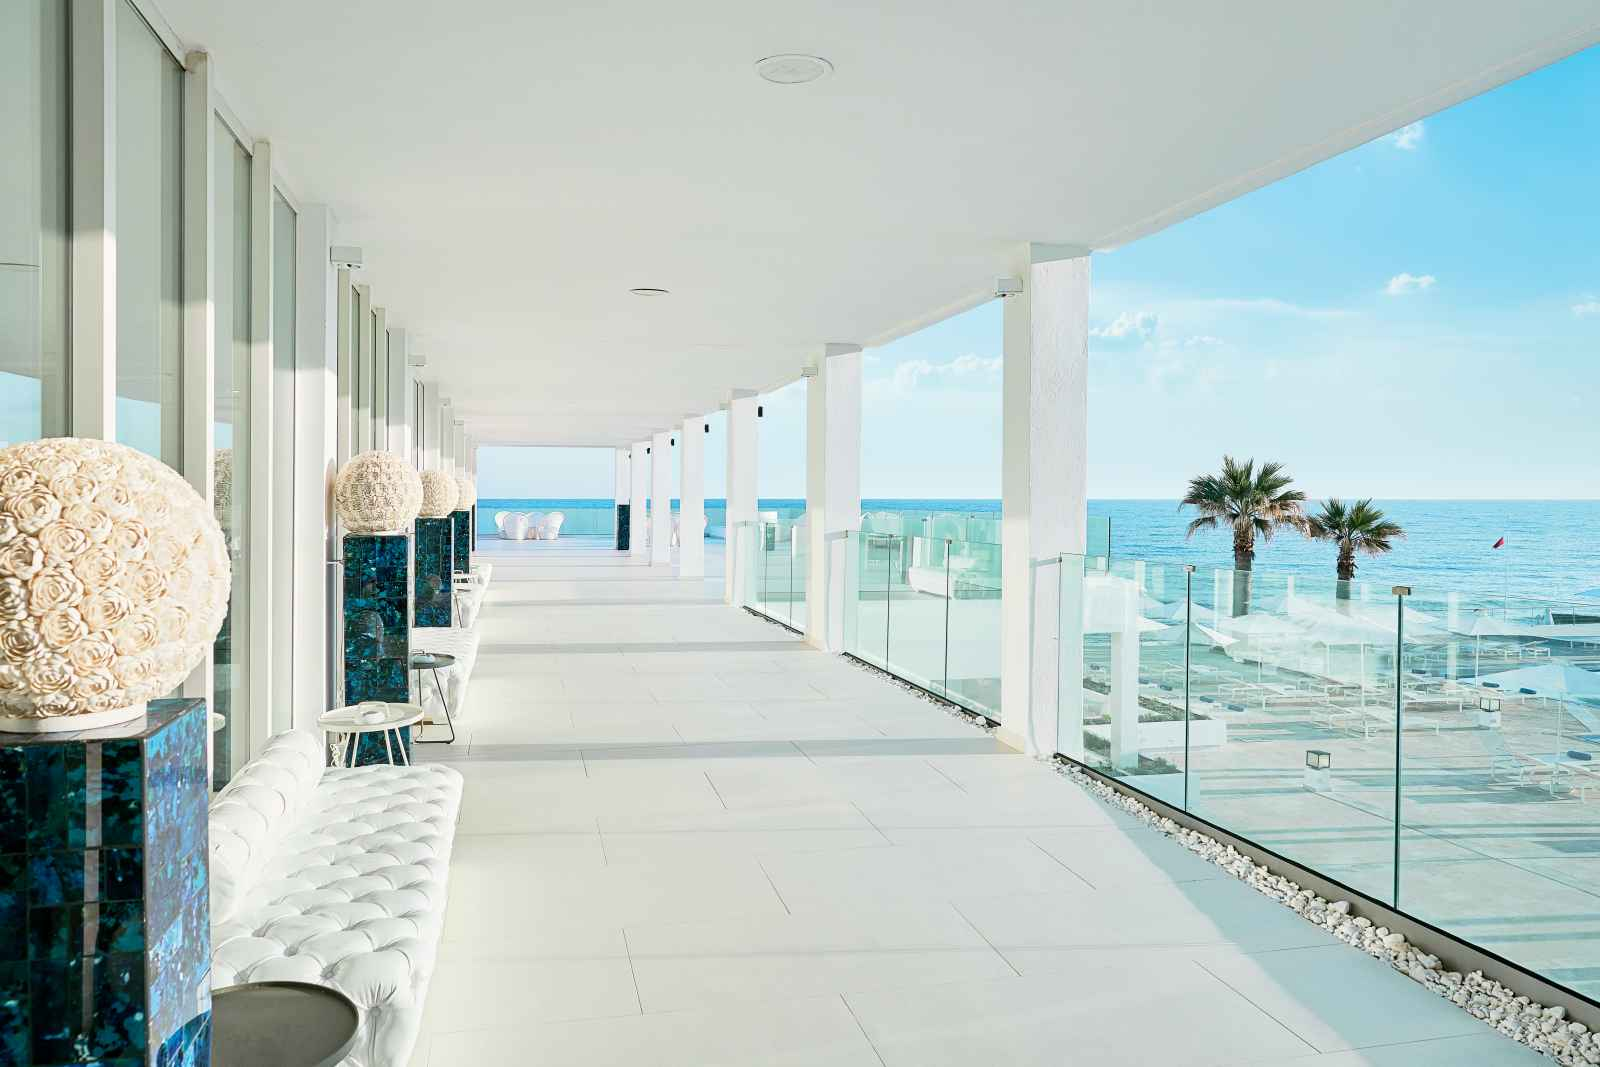 White Palace Grecotel Luxury Resort - 5*